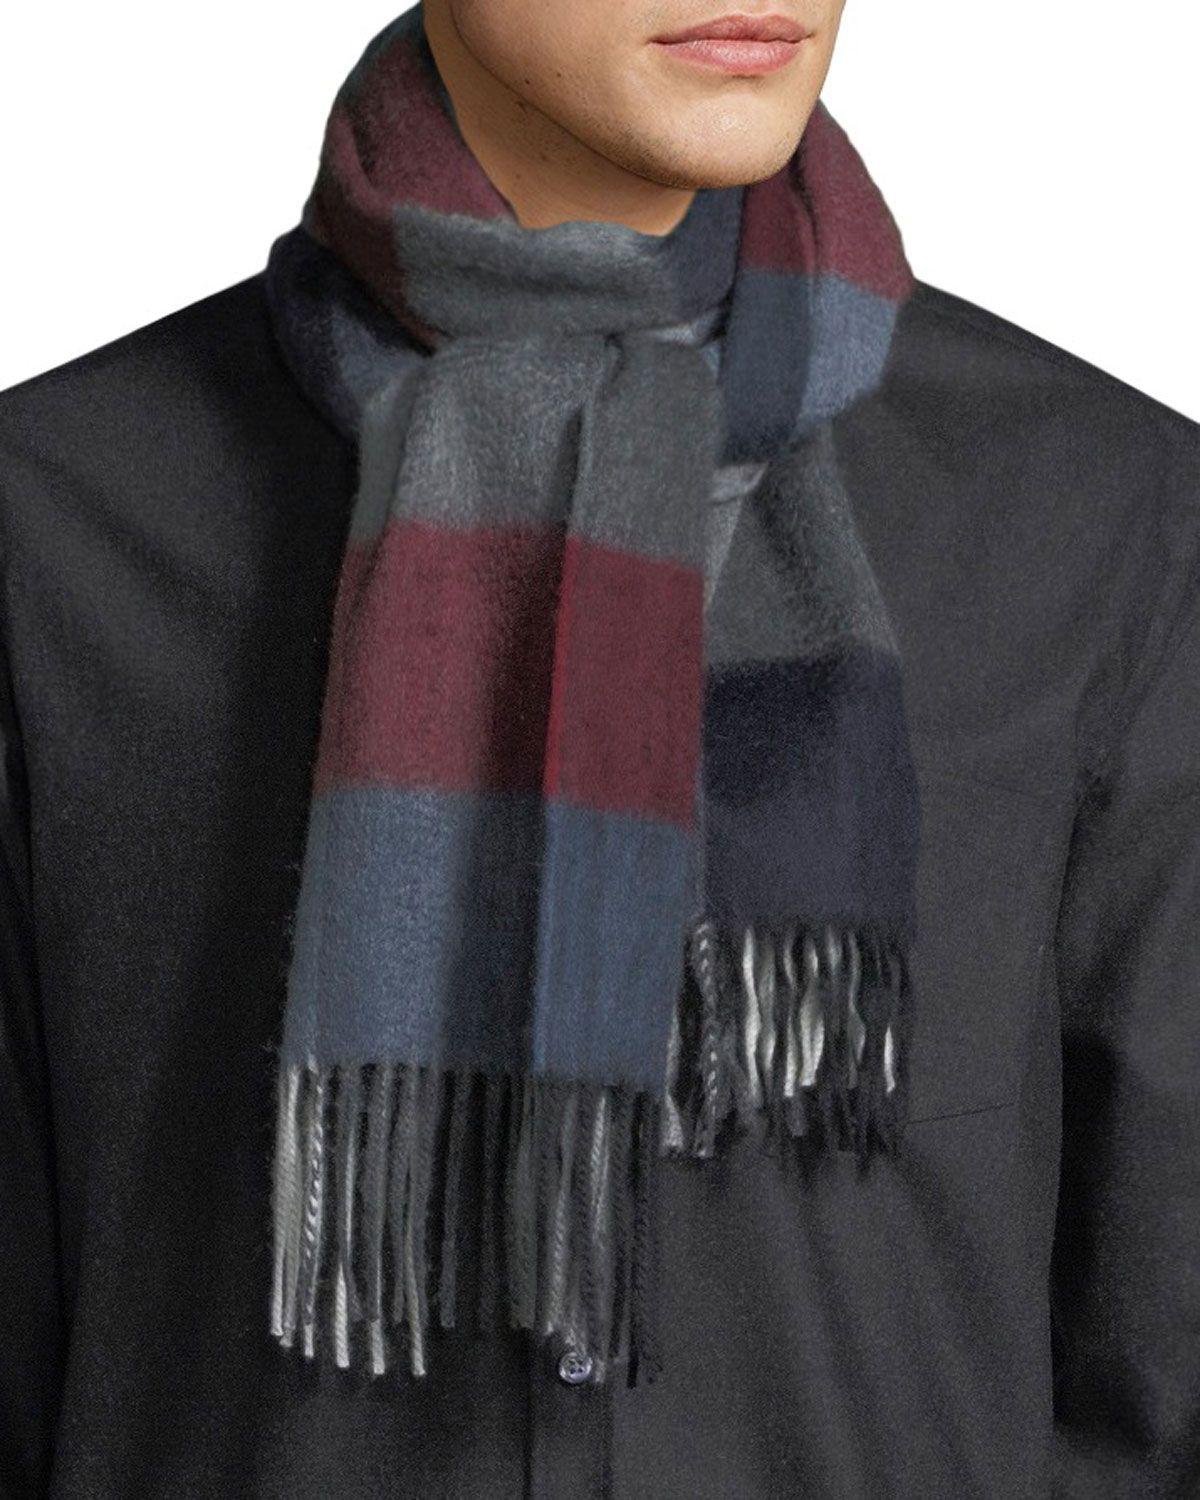 4ea9c768afe BEGG   CO MEN S HILSADAY BLOCK CHECK CASHMERE SCARF.  beggco